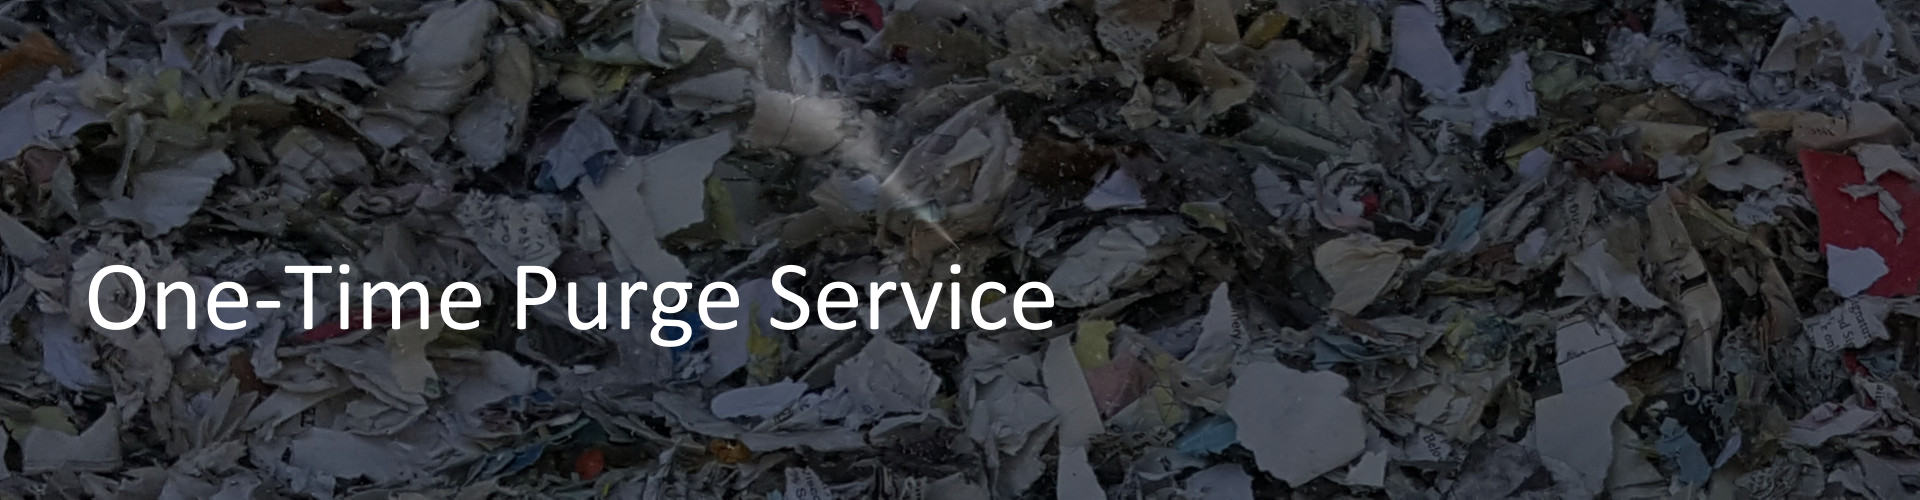 Purge Shredding Service